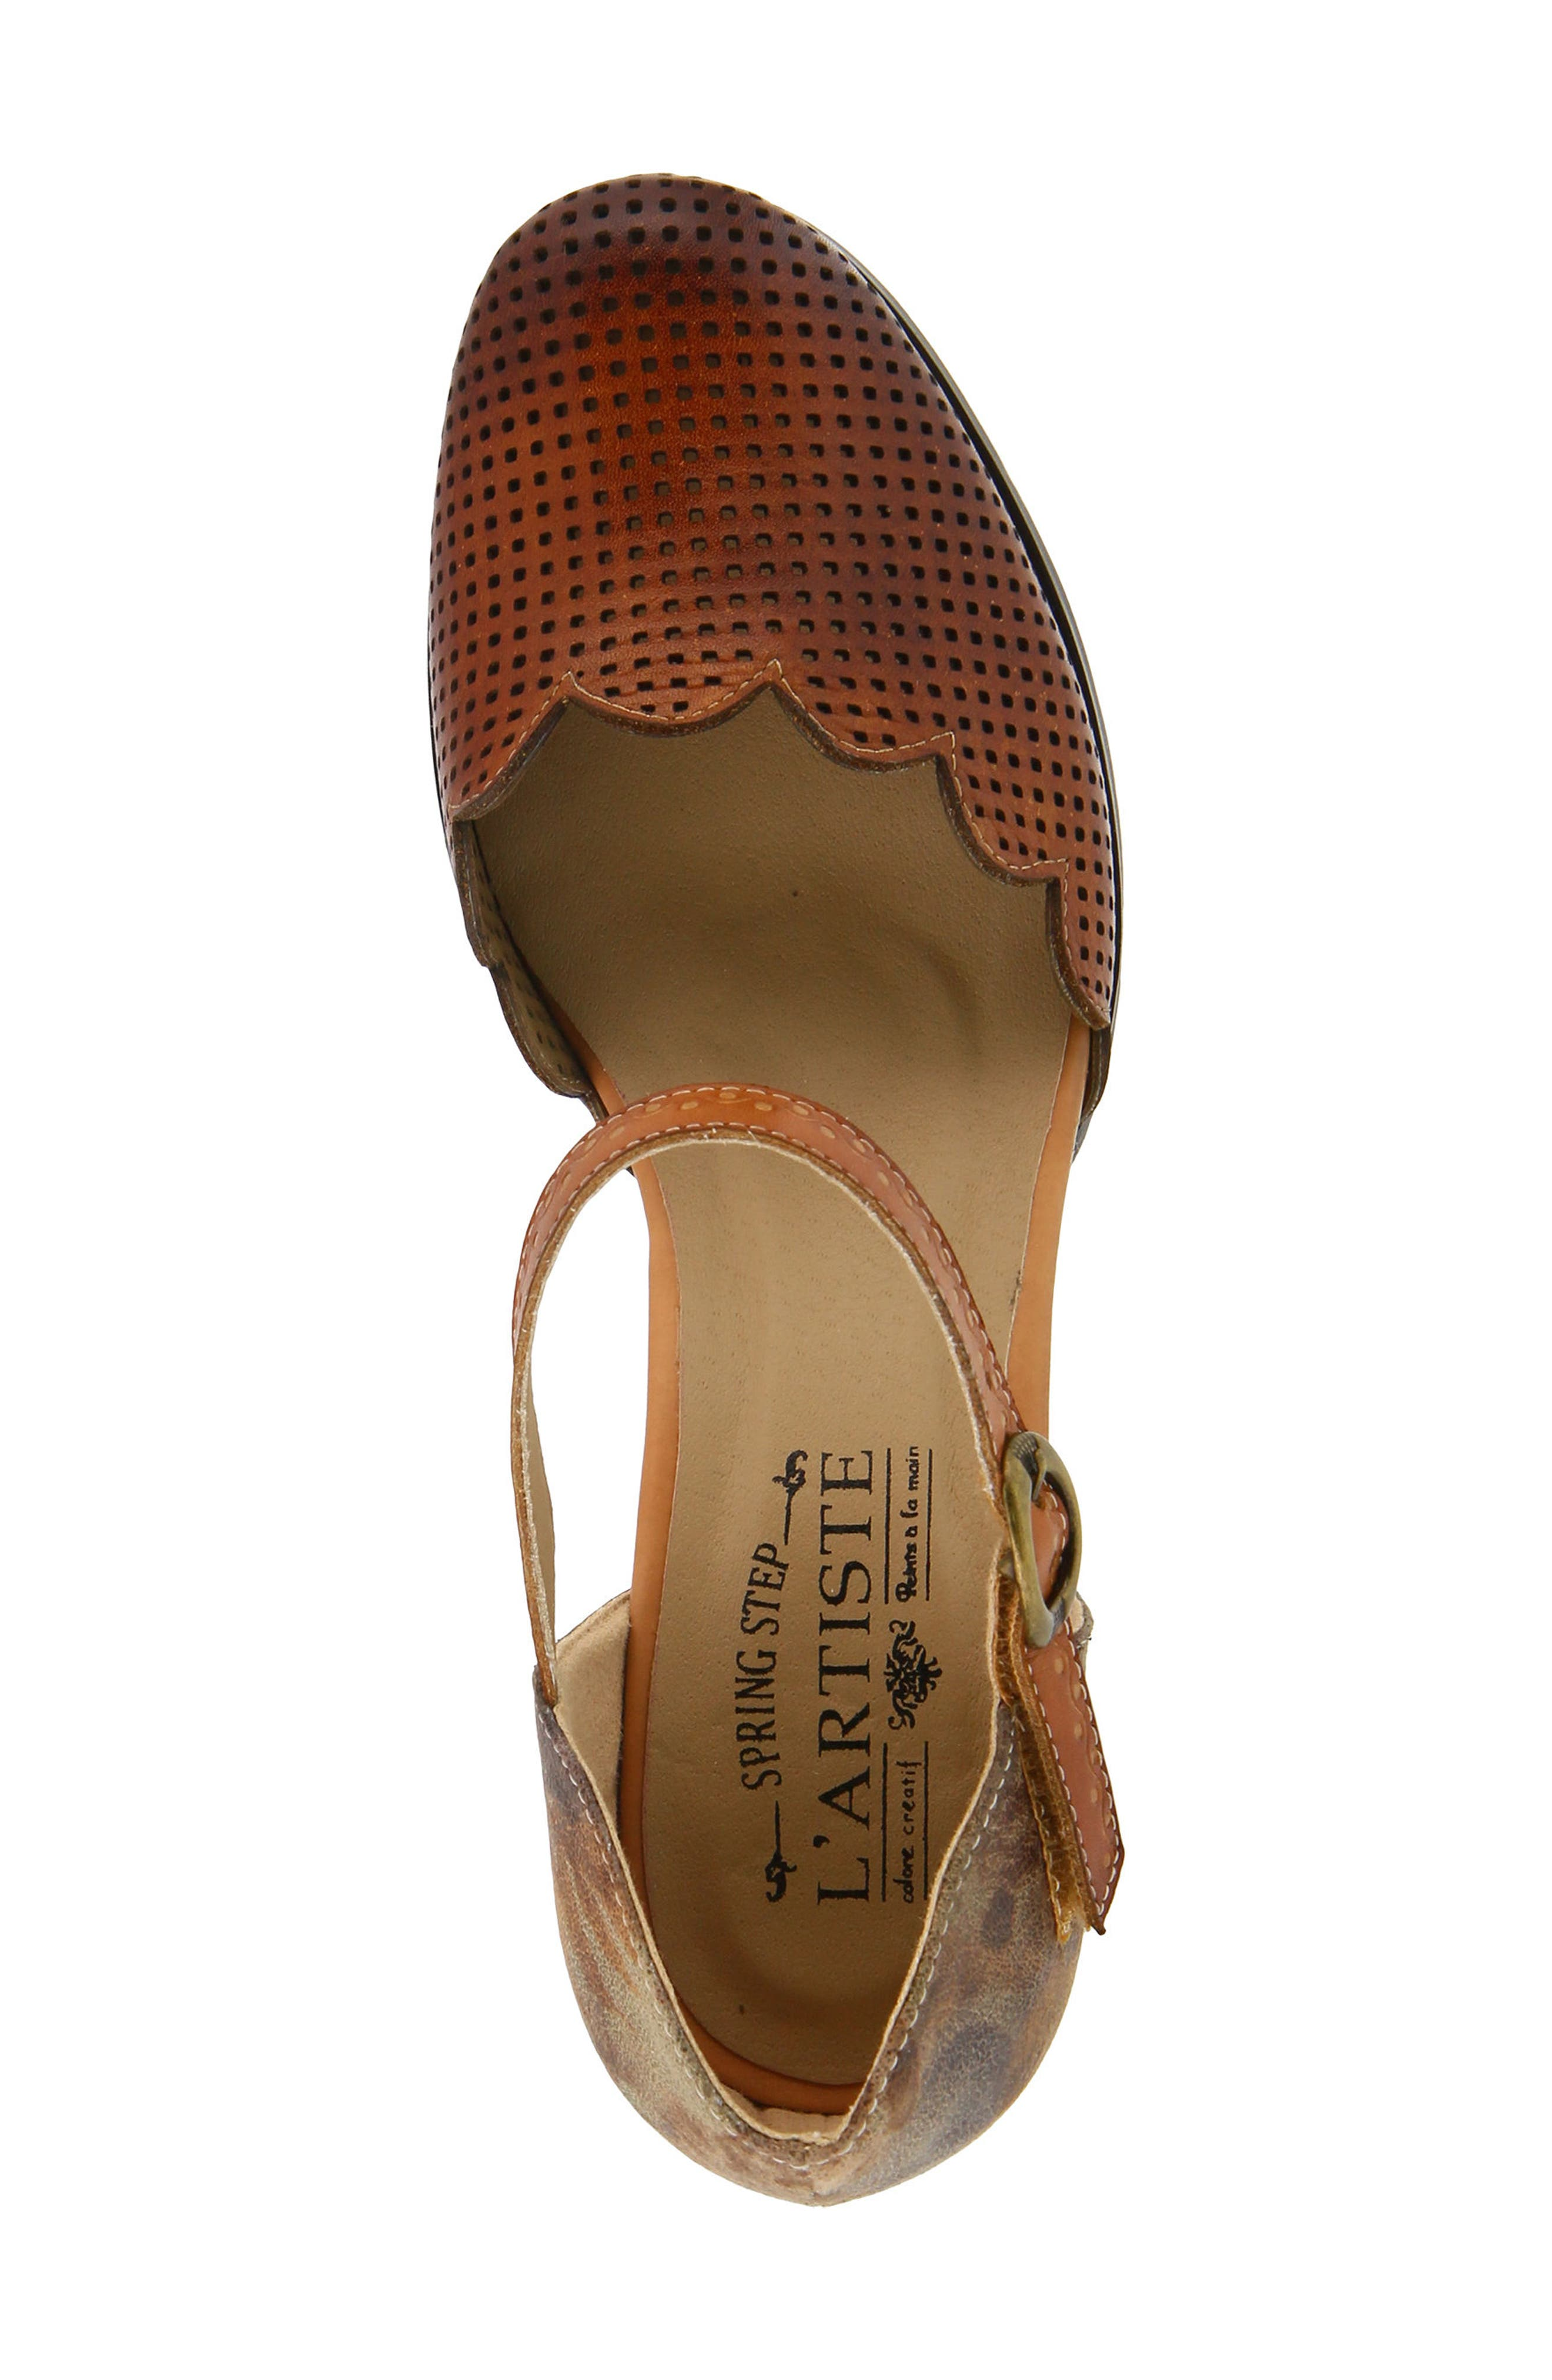 L'Artiste Parchelle Pump,                             Alternate thumbnail 4, color,                             Camel Leather